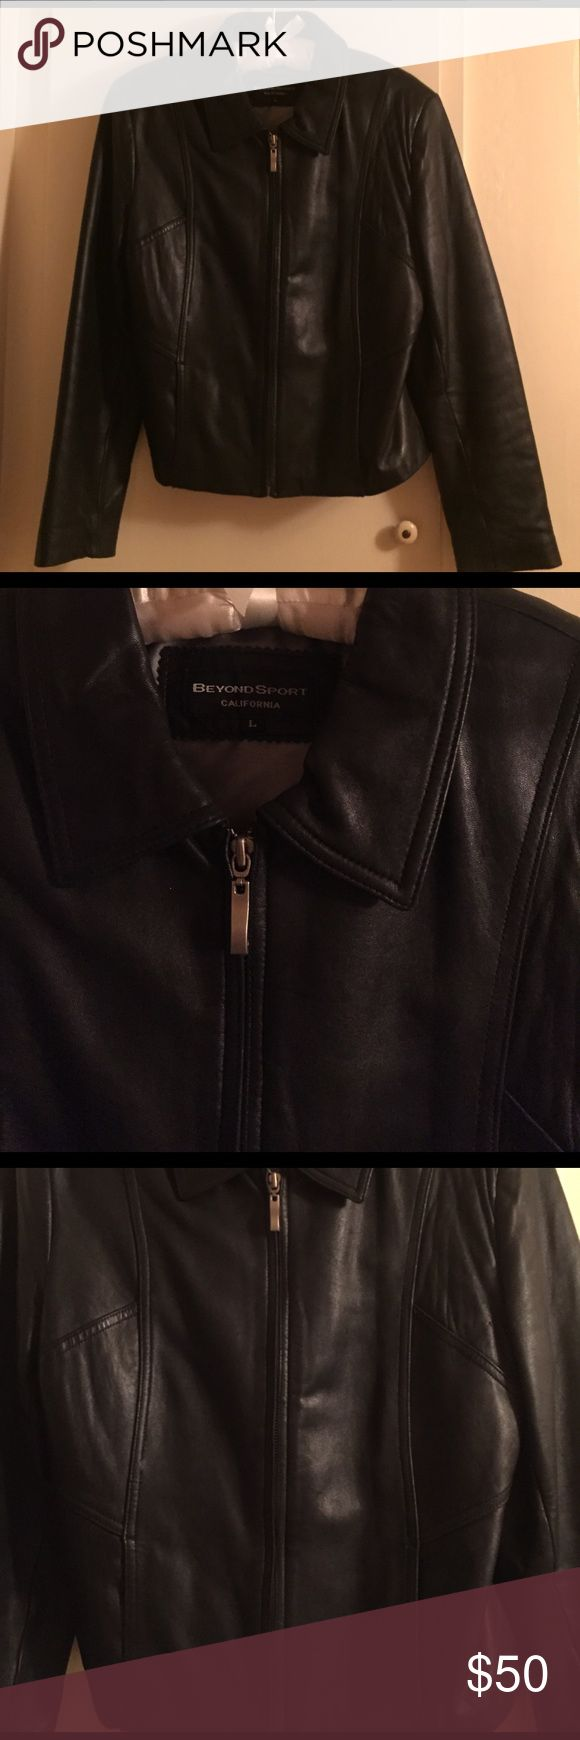 Black leather jacket This short leather jacket feels like butta! Perfect with a pair of slacks and cute shoes for a fun night out! Jackets & Coats